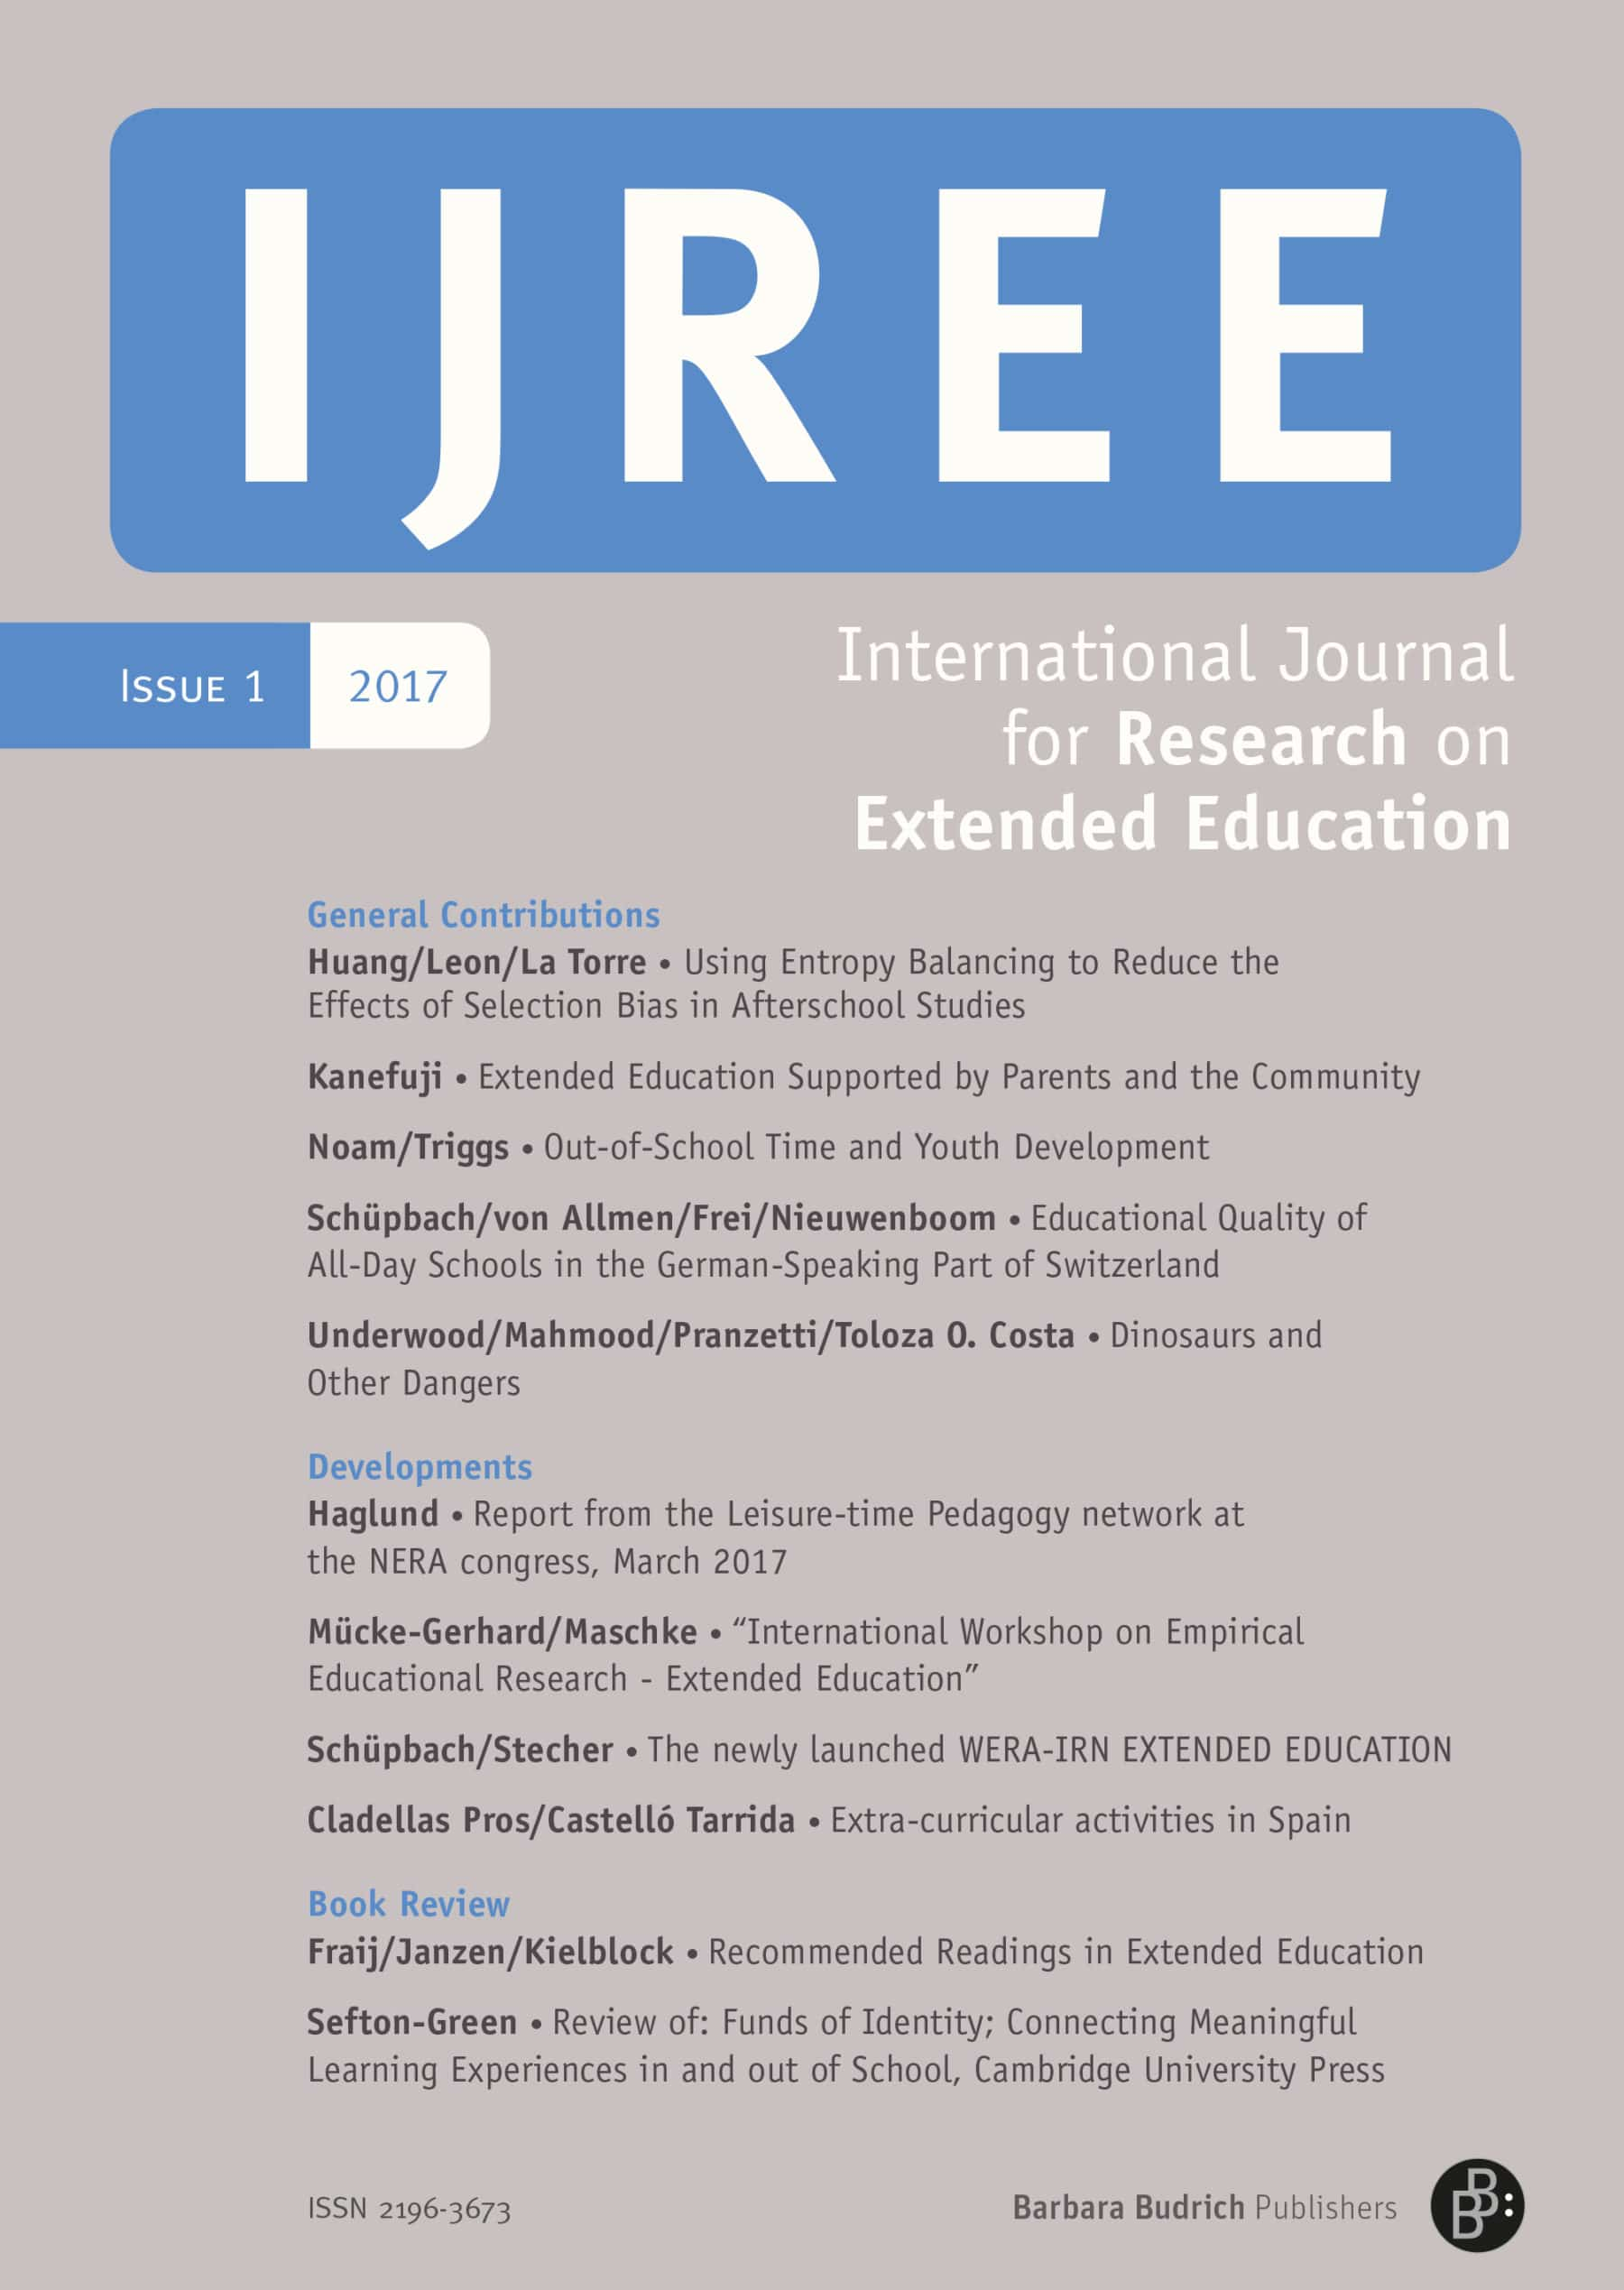 IJREE 1-2017 | Free Contributions